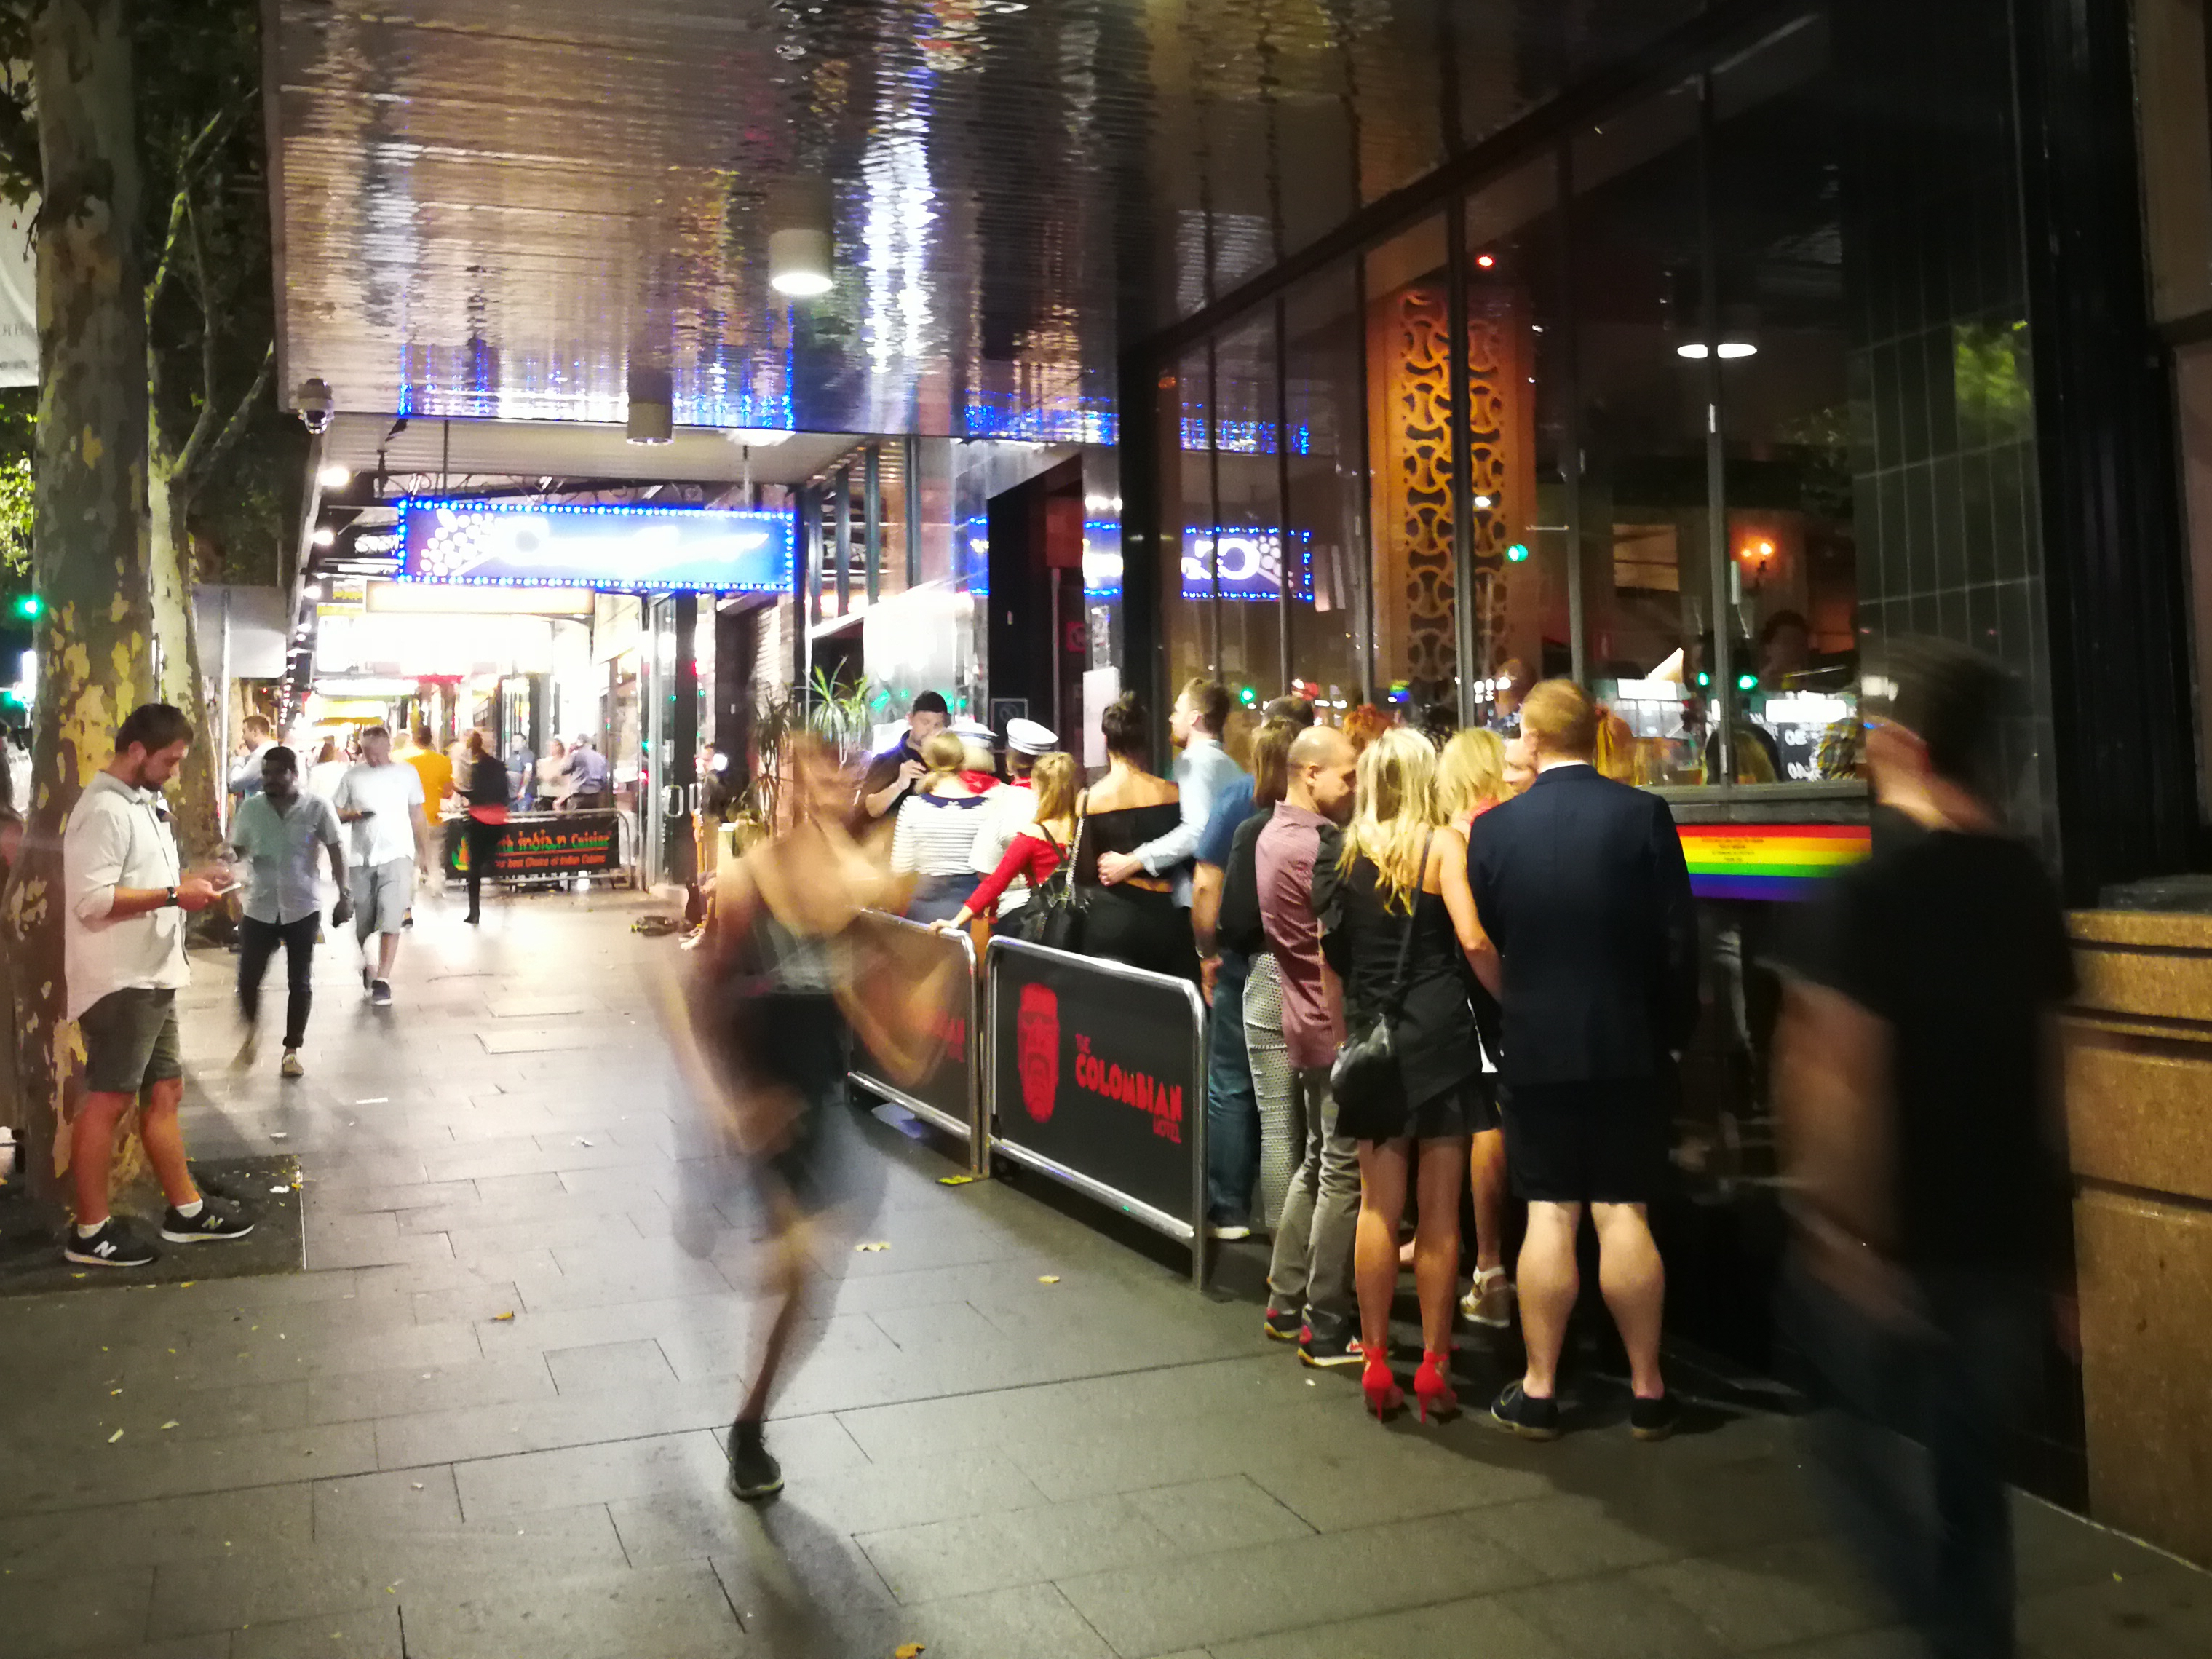 A runner dashes down Oxford Street while revellers wait in line. Image: Christopher Kelly